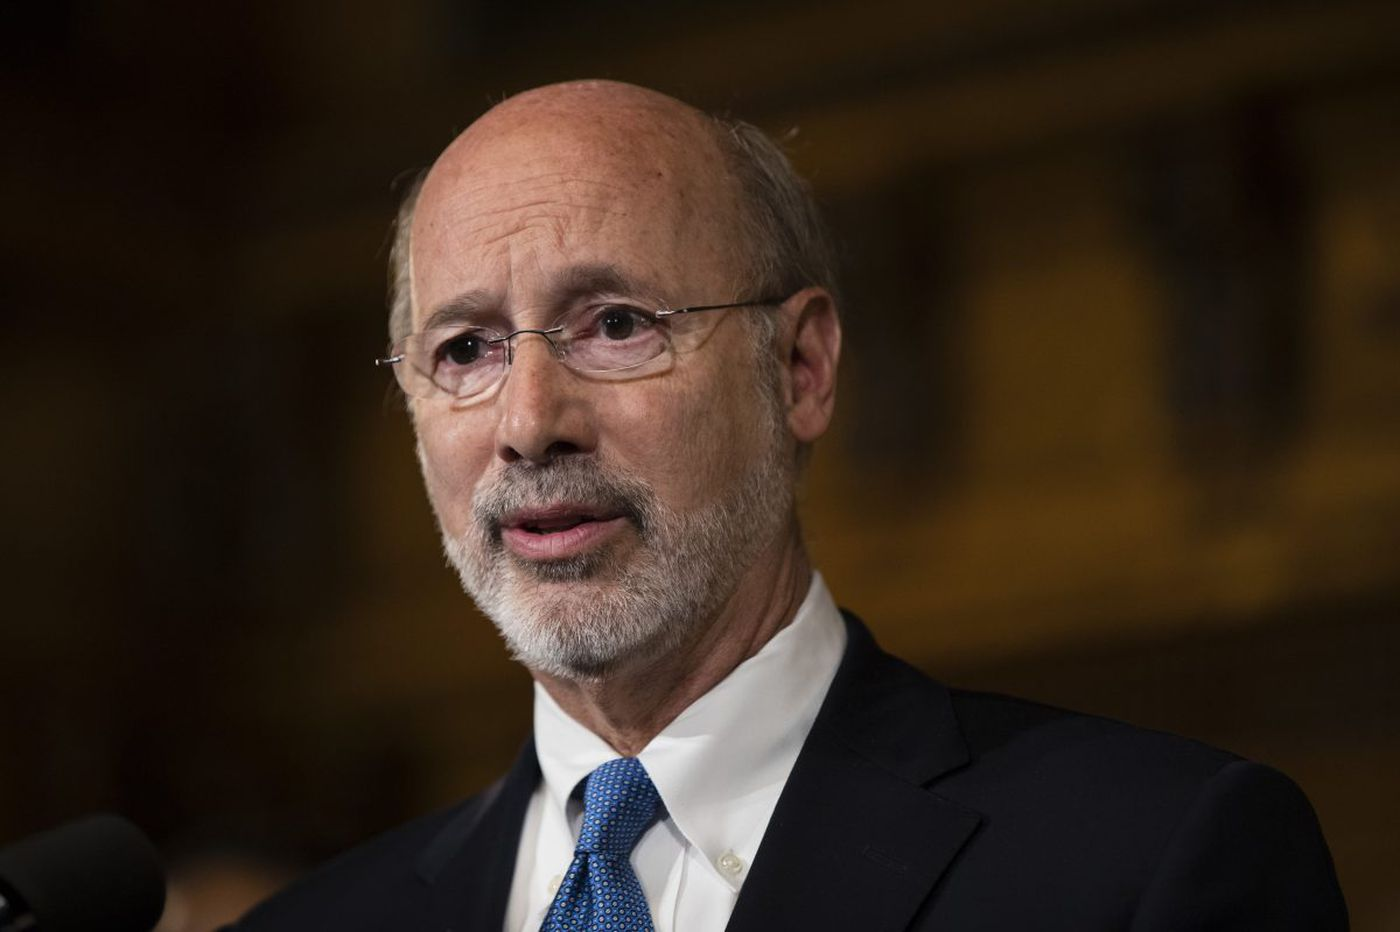 As Pa. budget impasse persists, Wolf warns of dire consequences